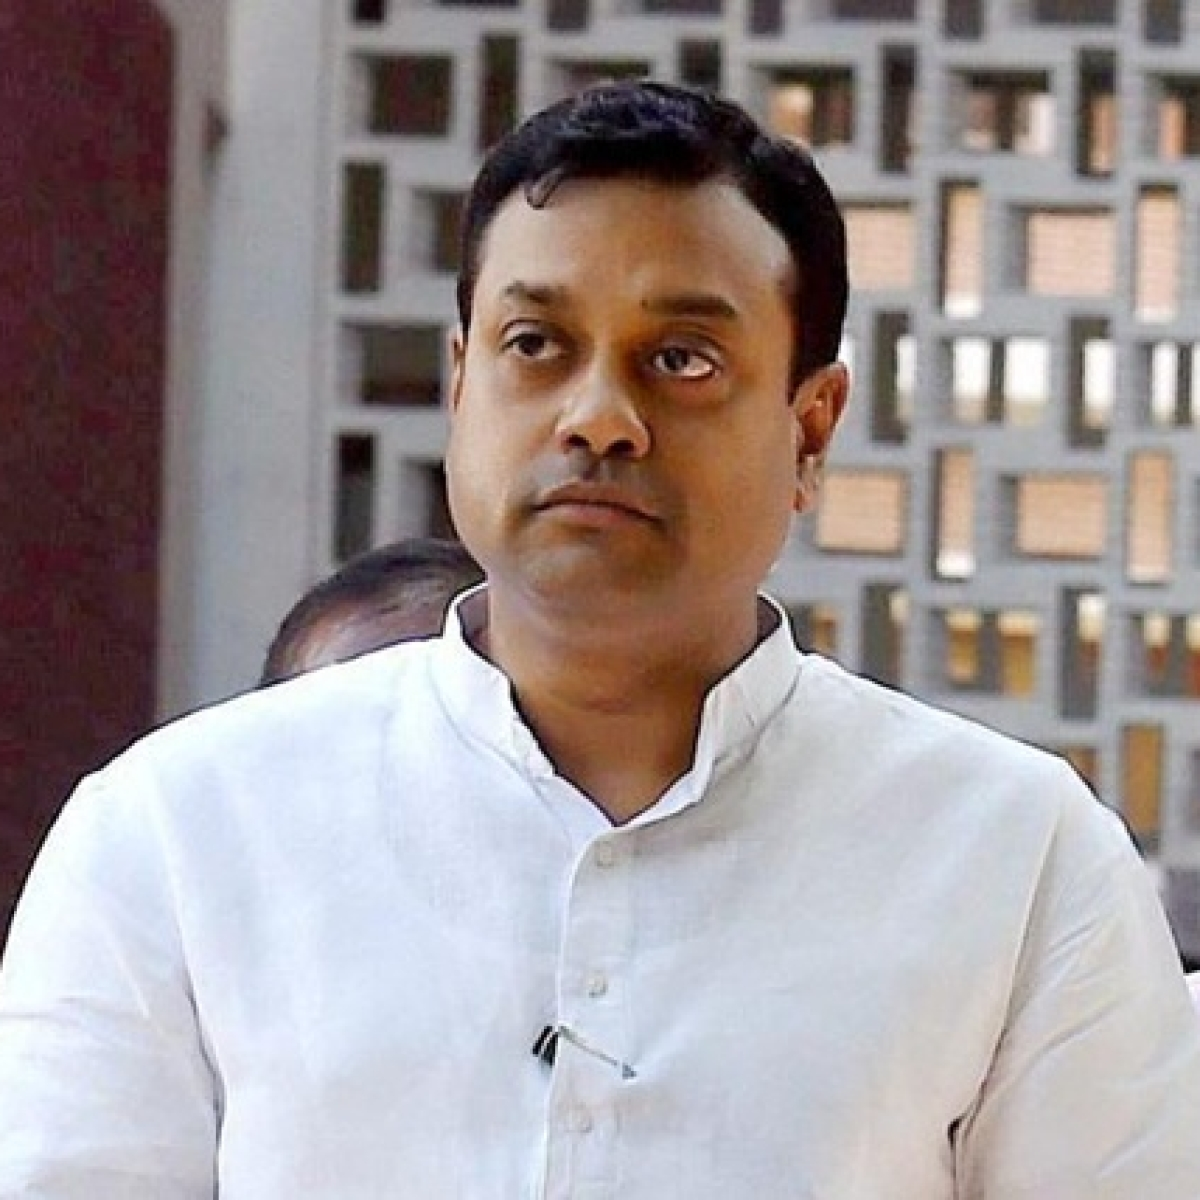 BJP spokesperson Sambit Patra hospitalised after showing COVID-19 symptoms